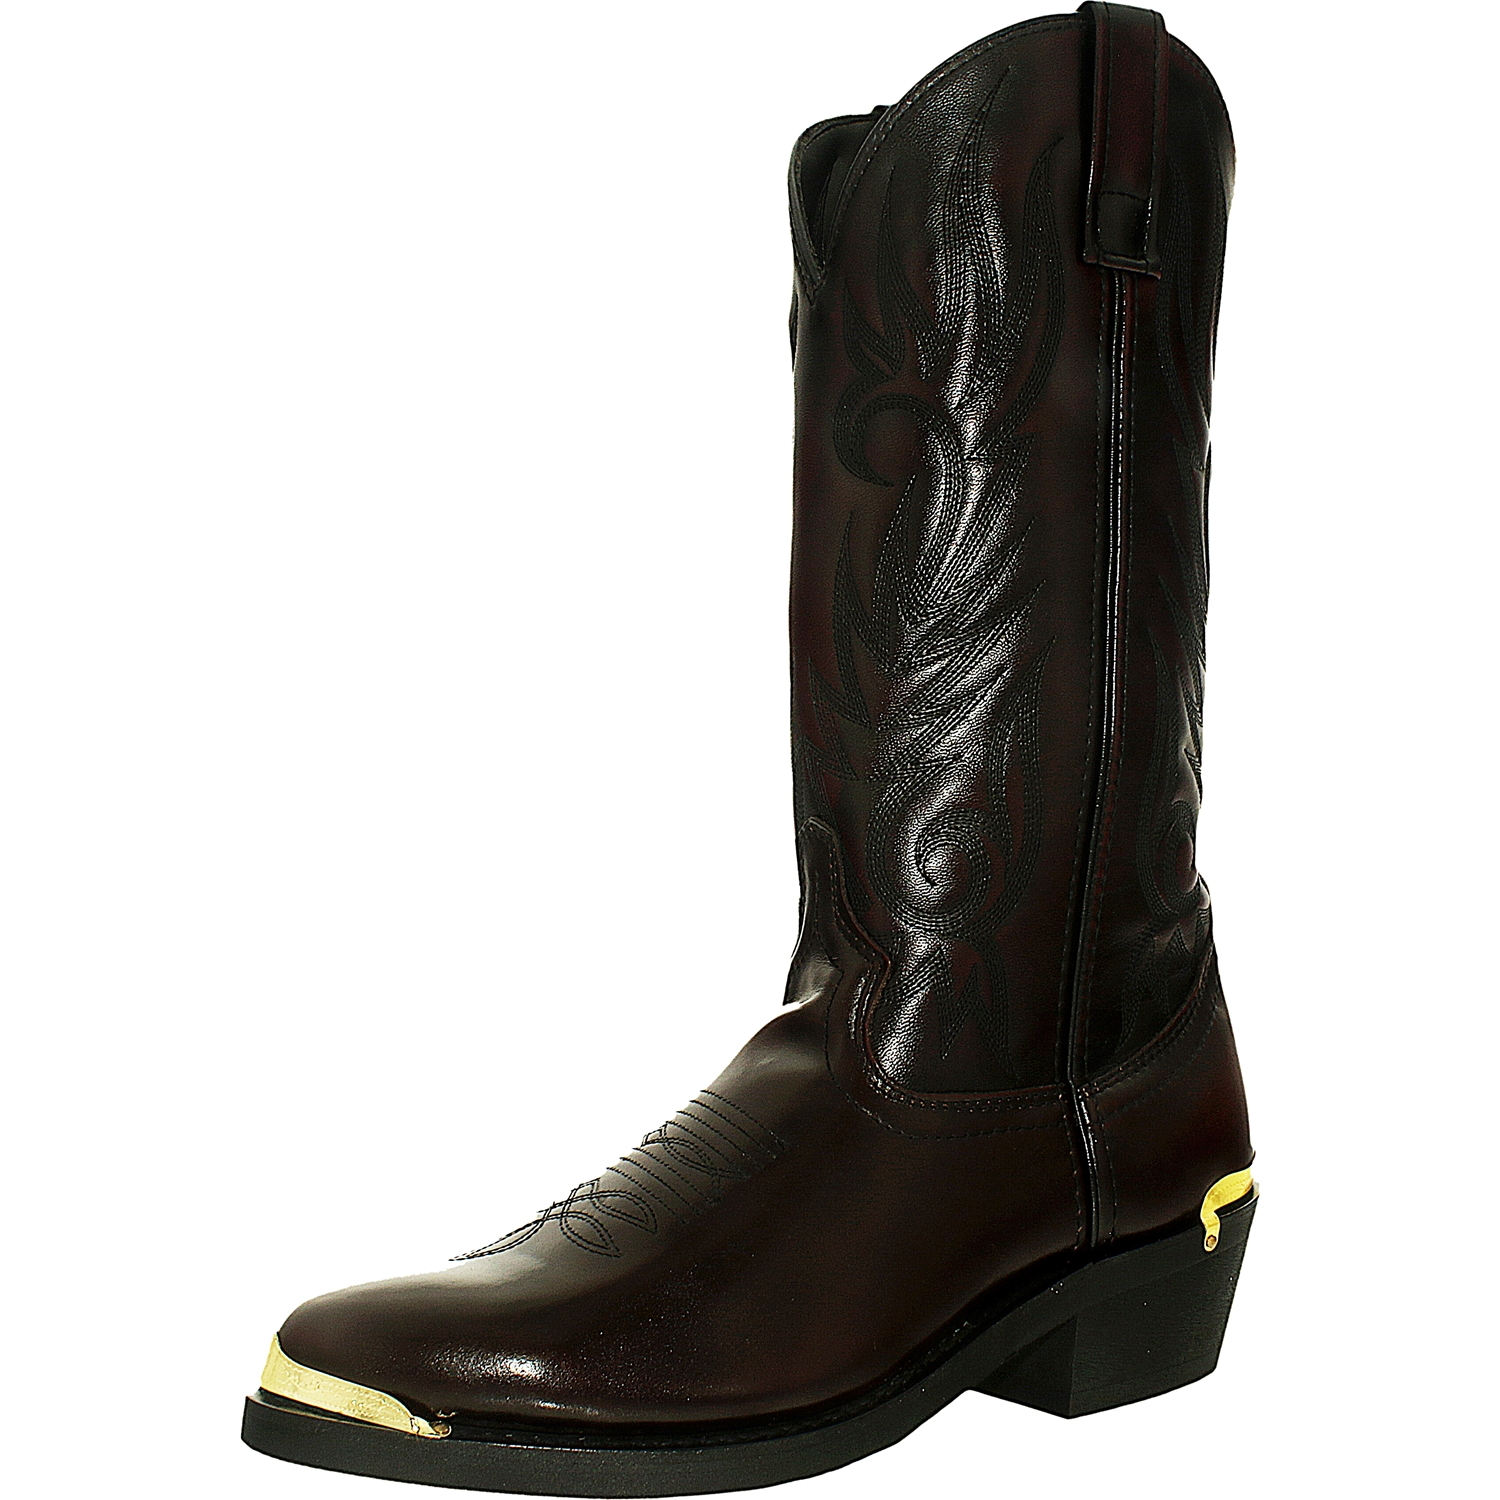 Laredo Men's Trucker M Leather Mid-Calf Leather Boot by Laredo